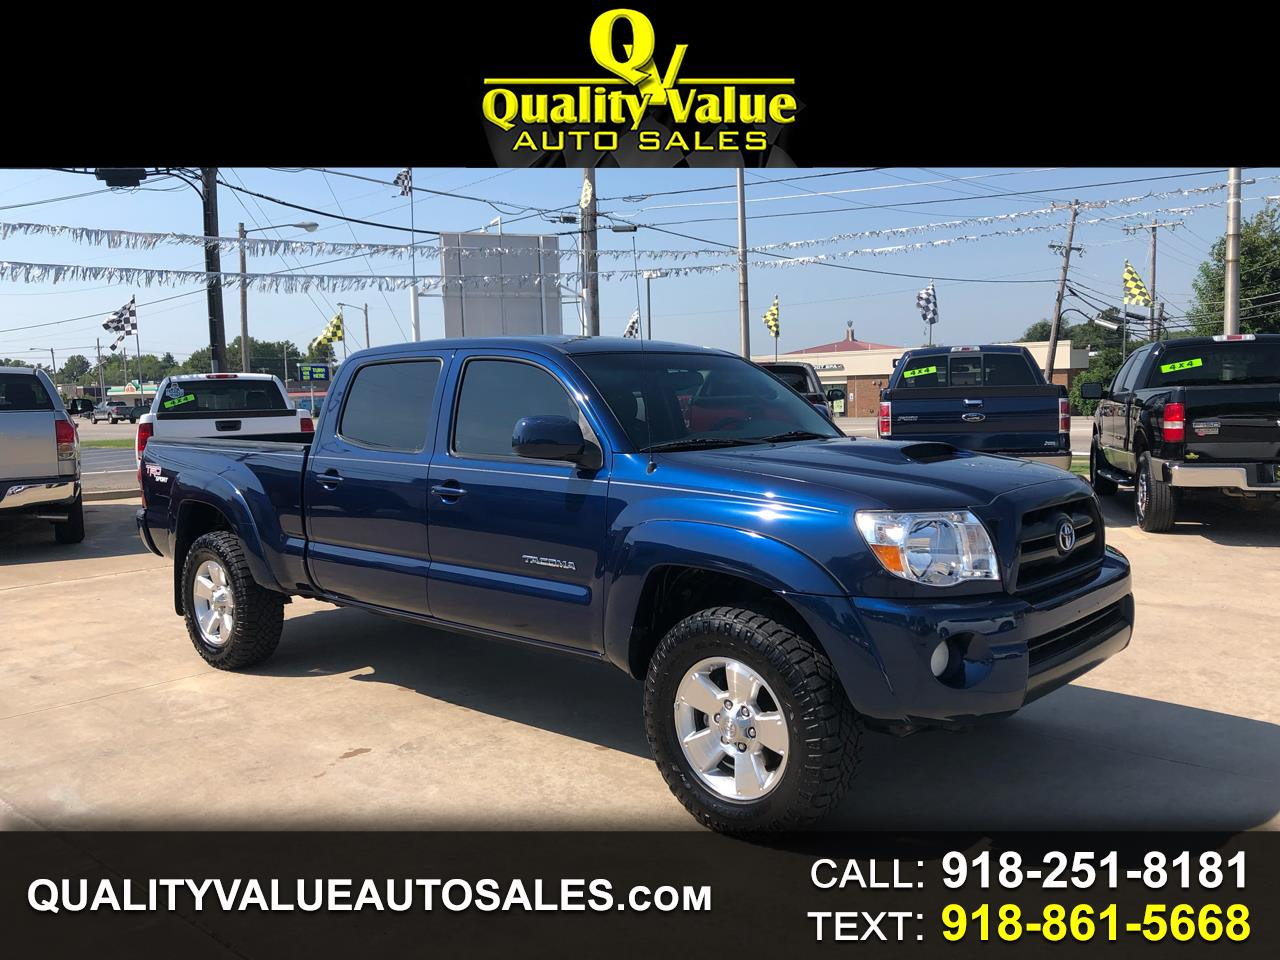 2006 Toyota Tacoma PreRunner SR5 Double Cab